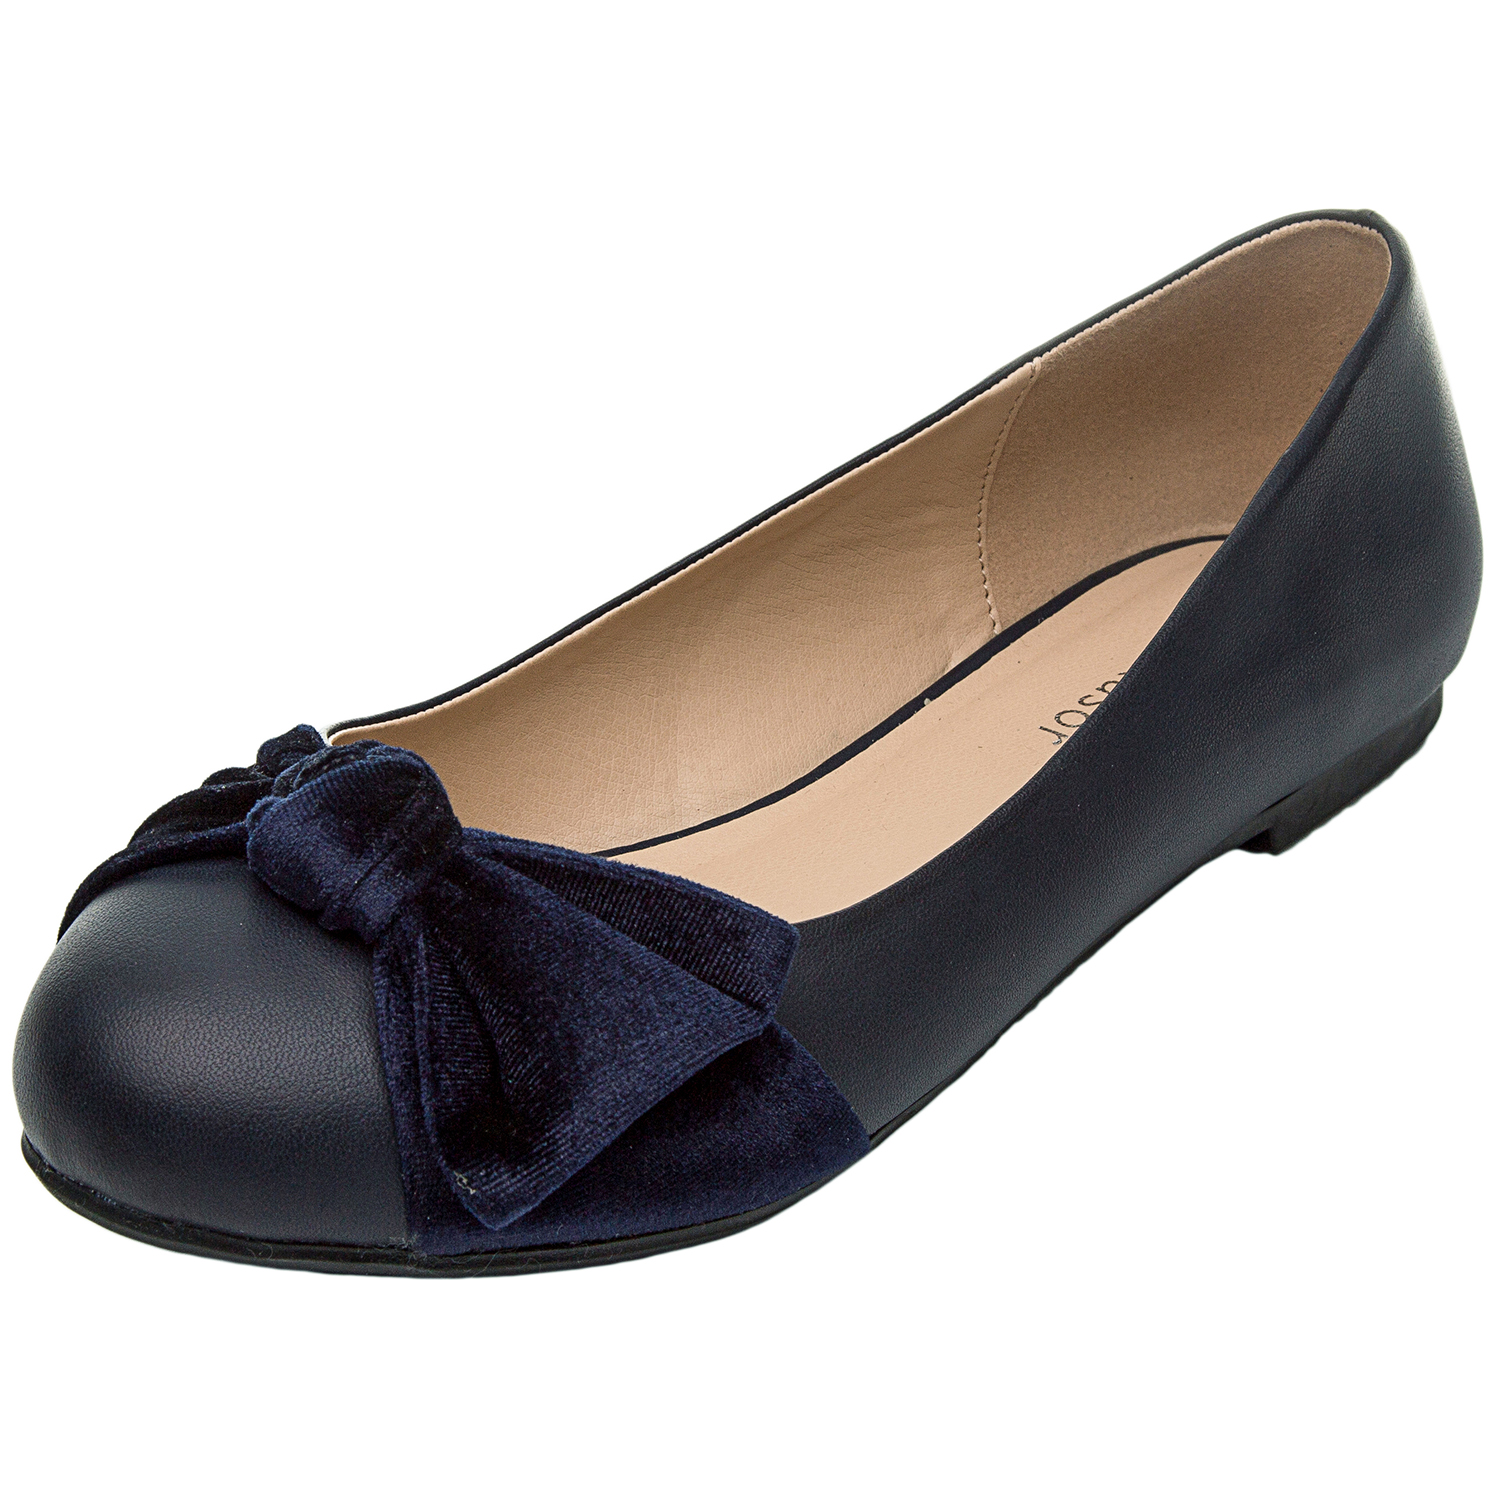 c33034b98301 US  29.99 - Luoika Women s Wide Width Flat Shoes - Comfortable Slip On  Round Toe Ballet Flats. - www.luoika-us.com